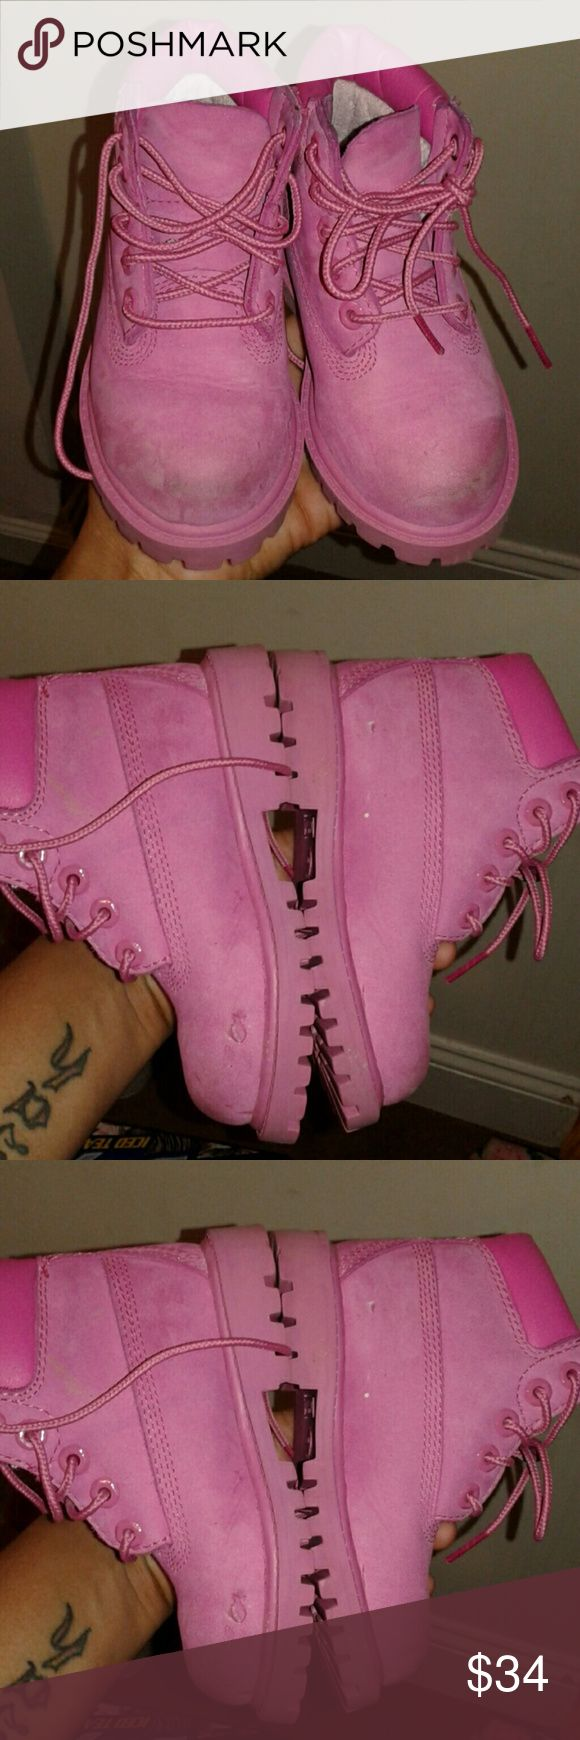 Girls Pink Timberlands Size 8c Good used condition see pics for details size 8c Pink Timberland Boots Timberland Shoes Boots